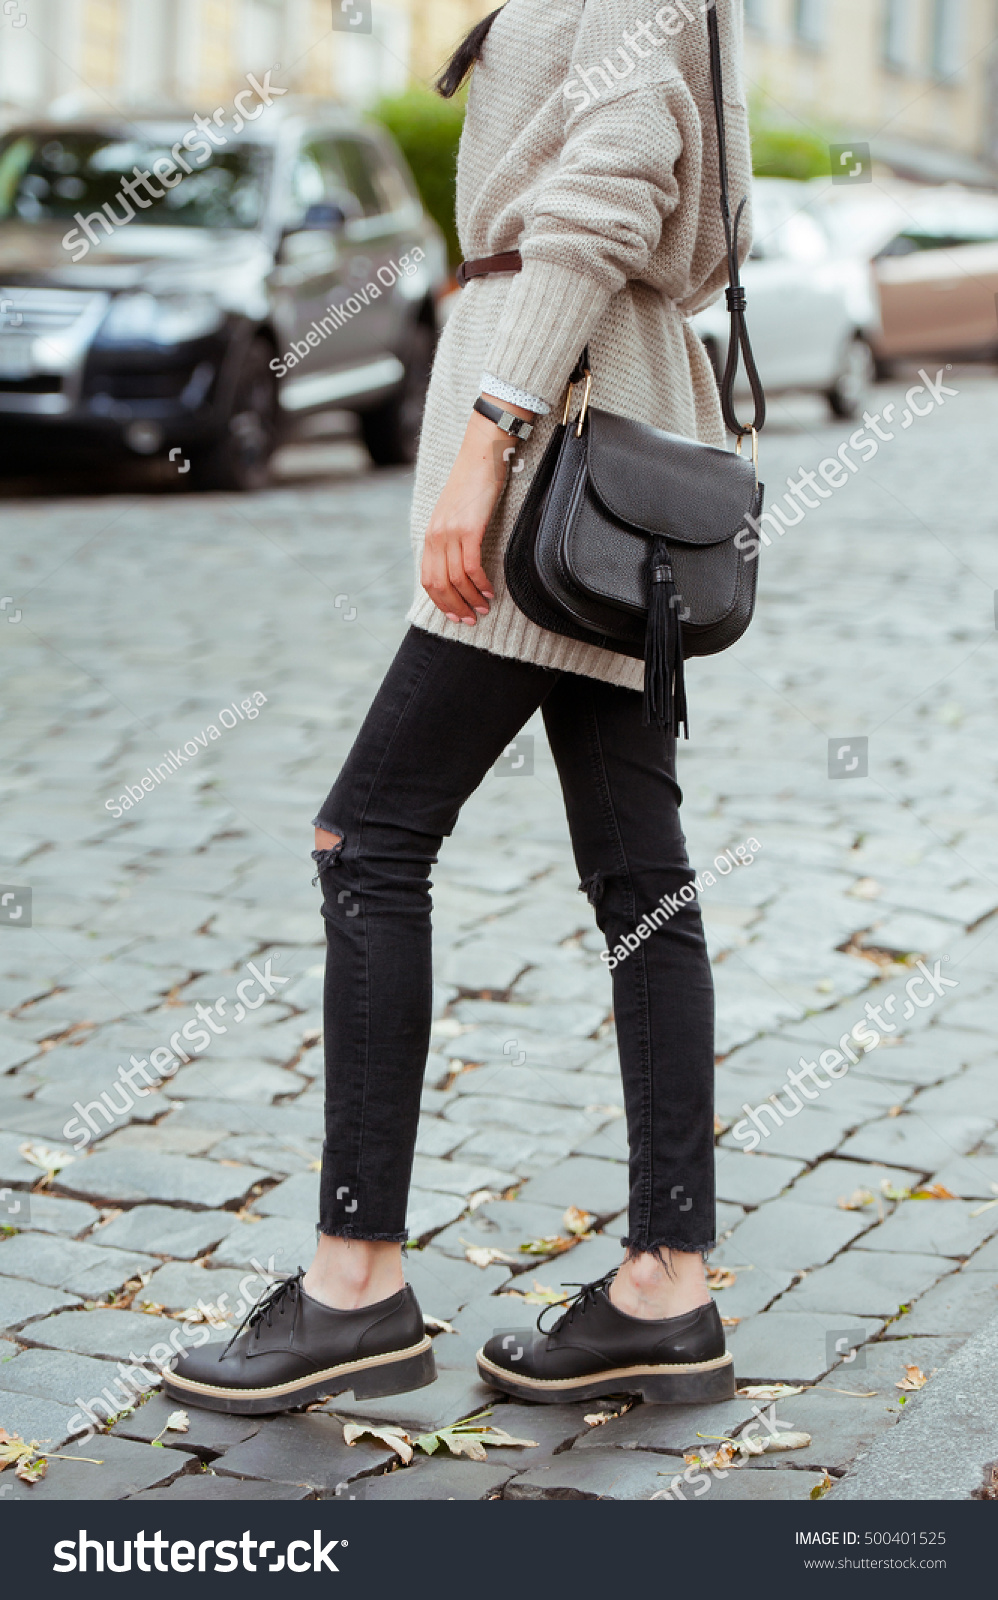 Fashionable Young Woman Black Jeans Beige Stock Photo 500401525 ...